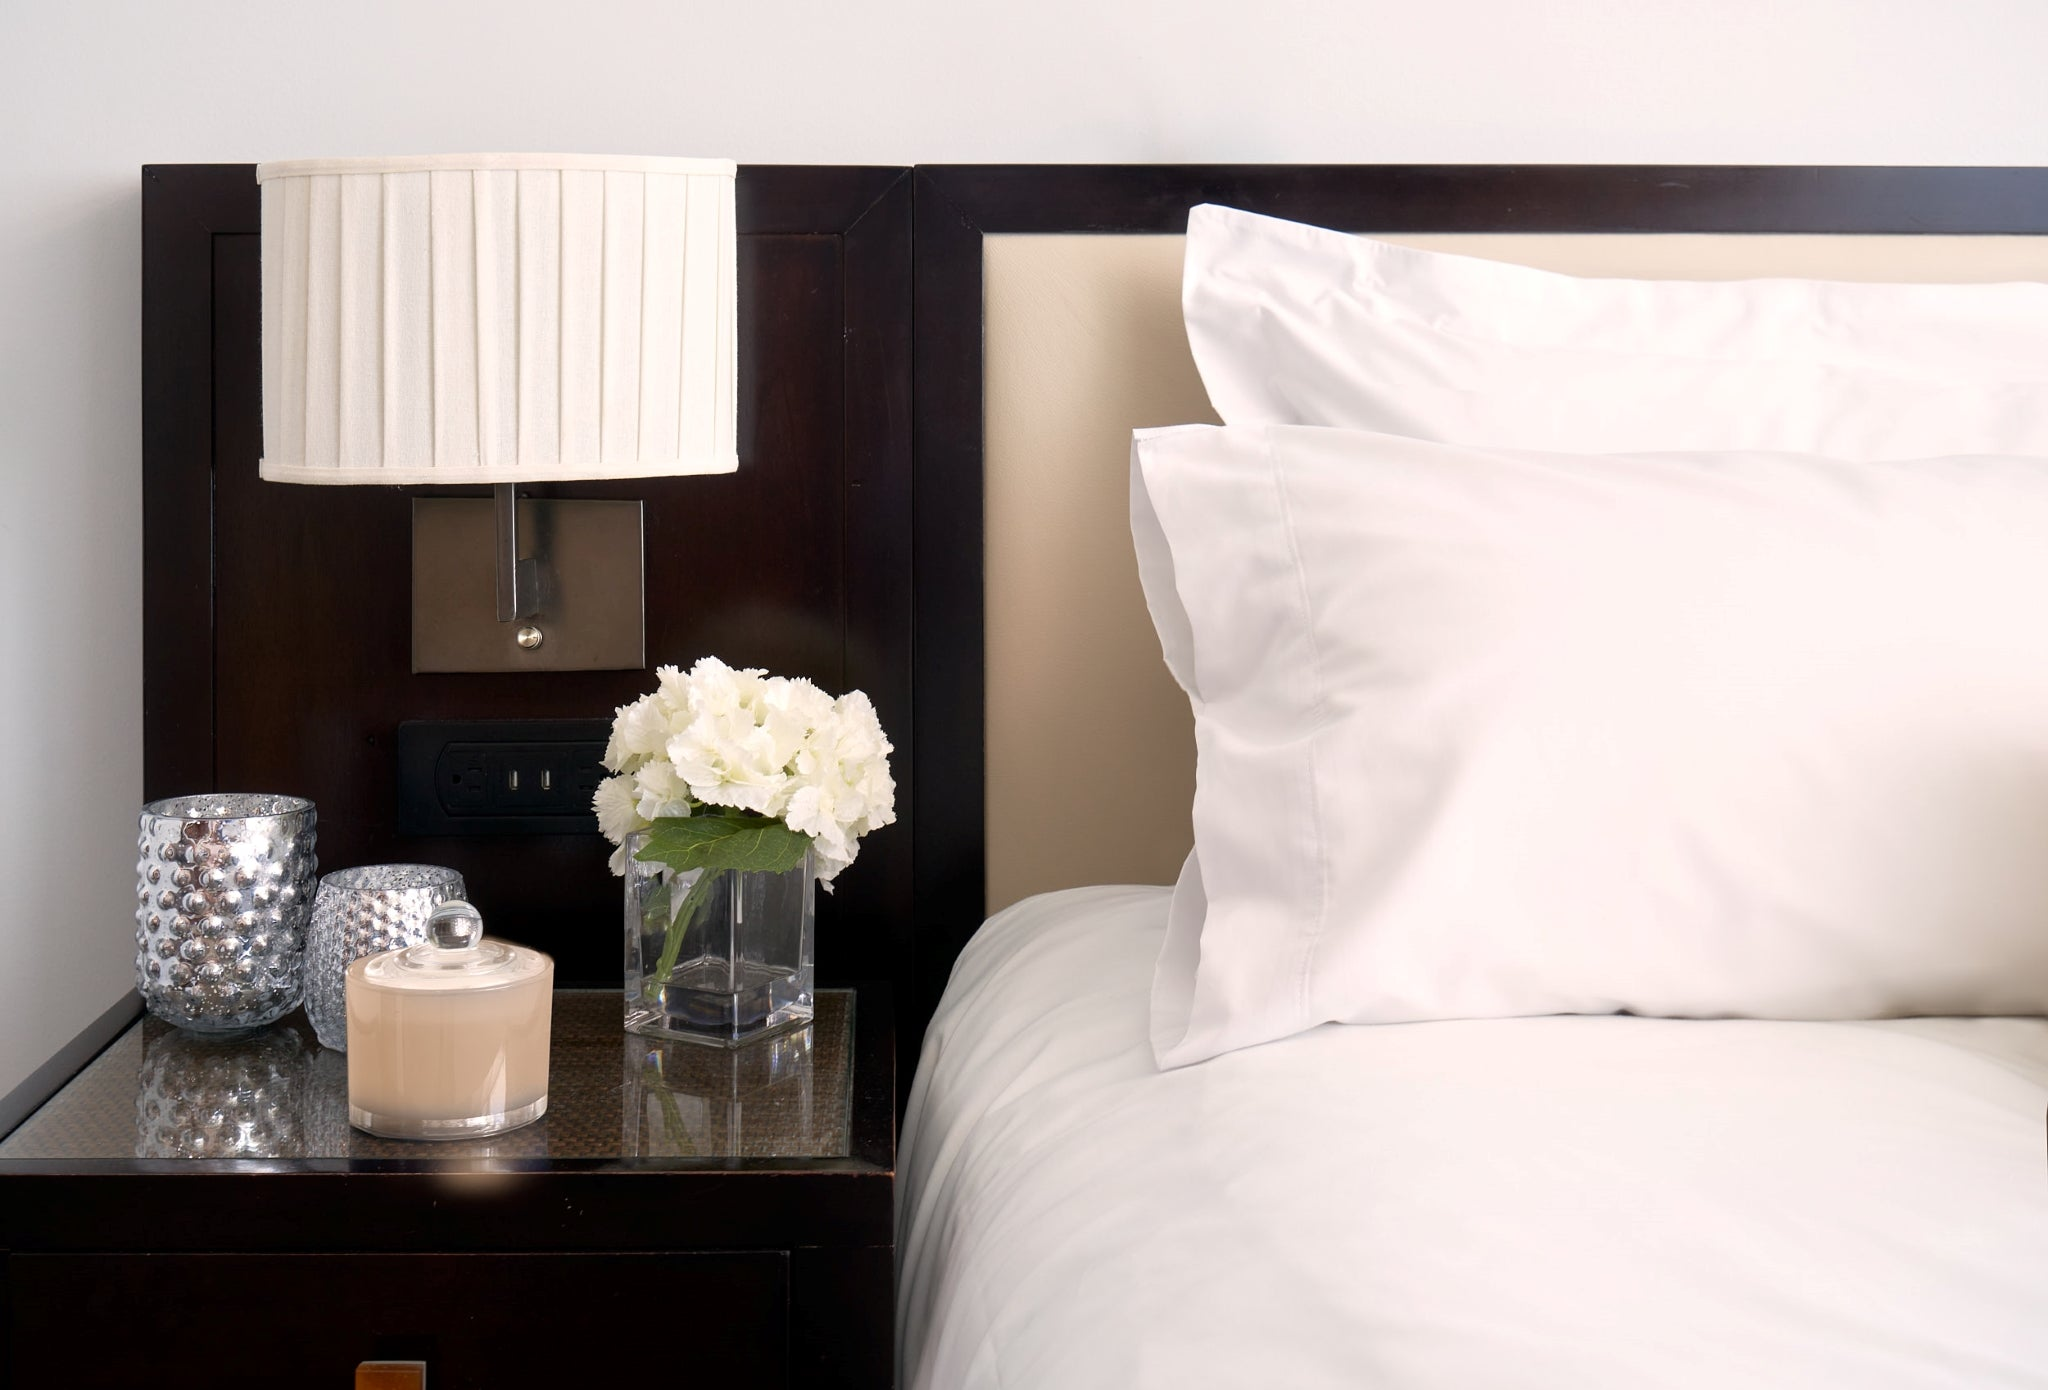 Bed made with Thomaston Mills American Luxury Sheets